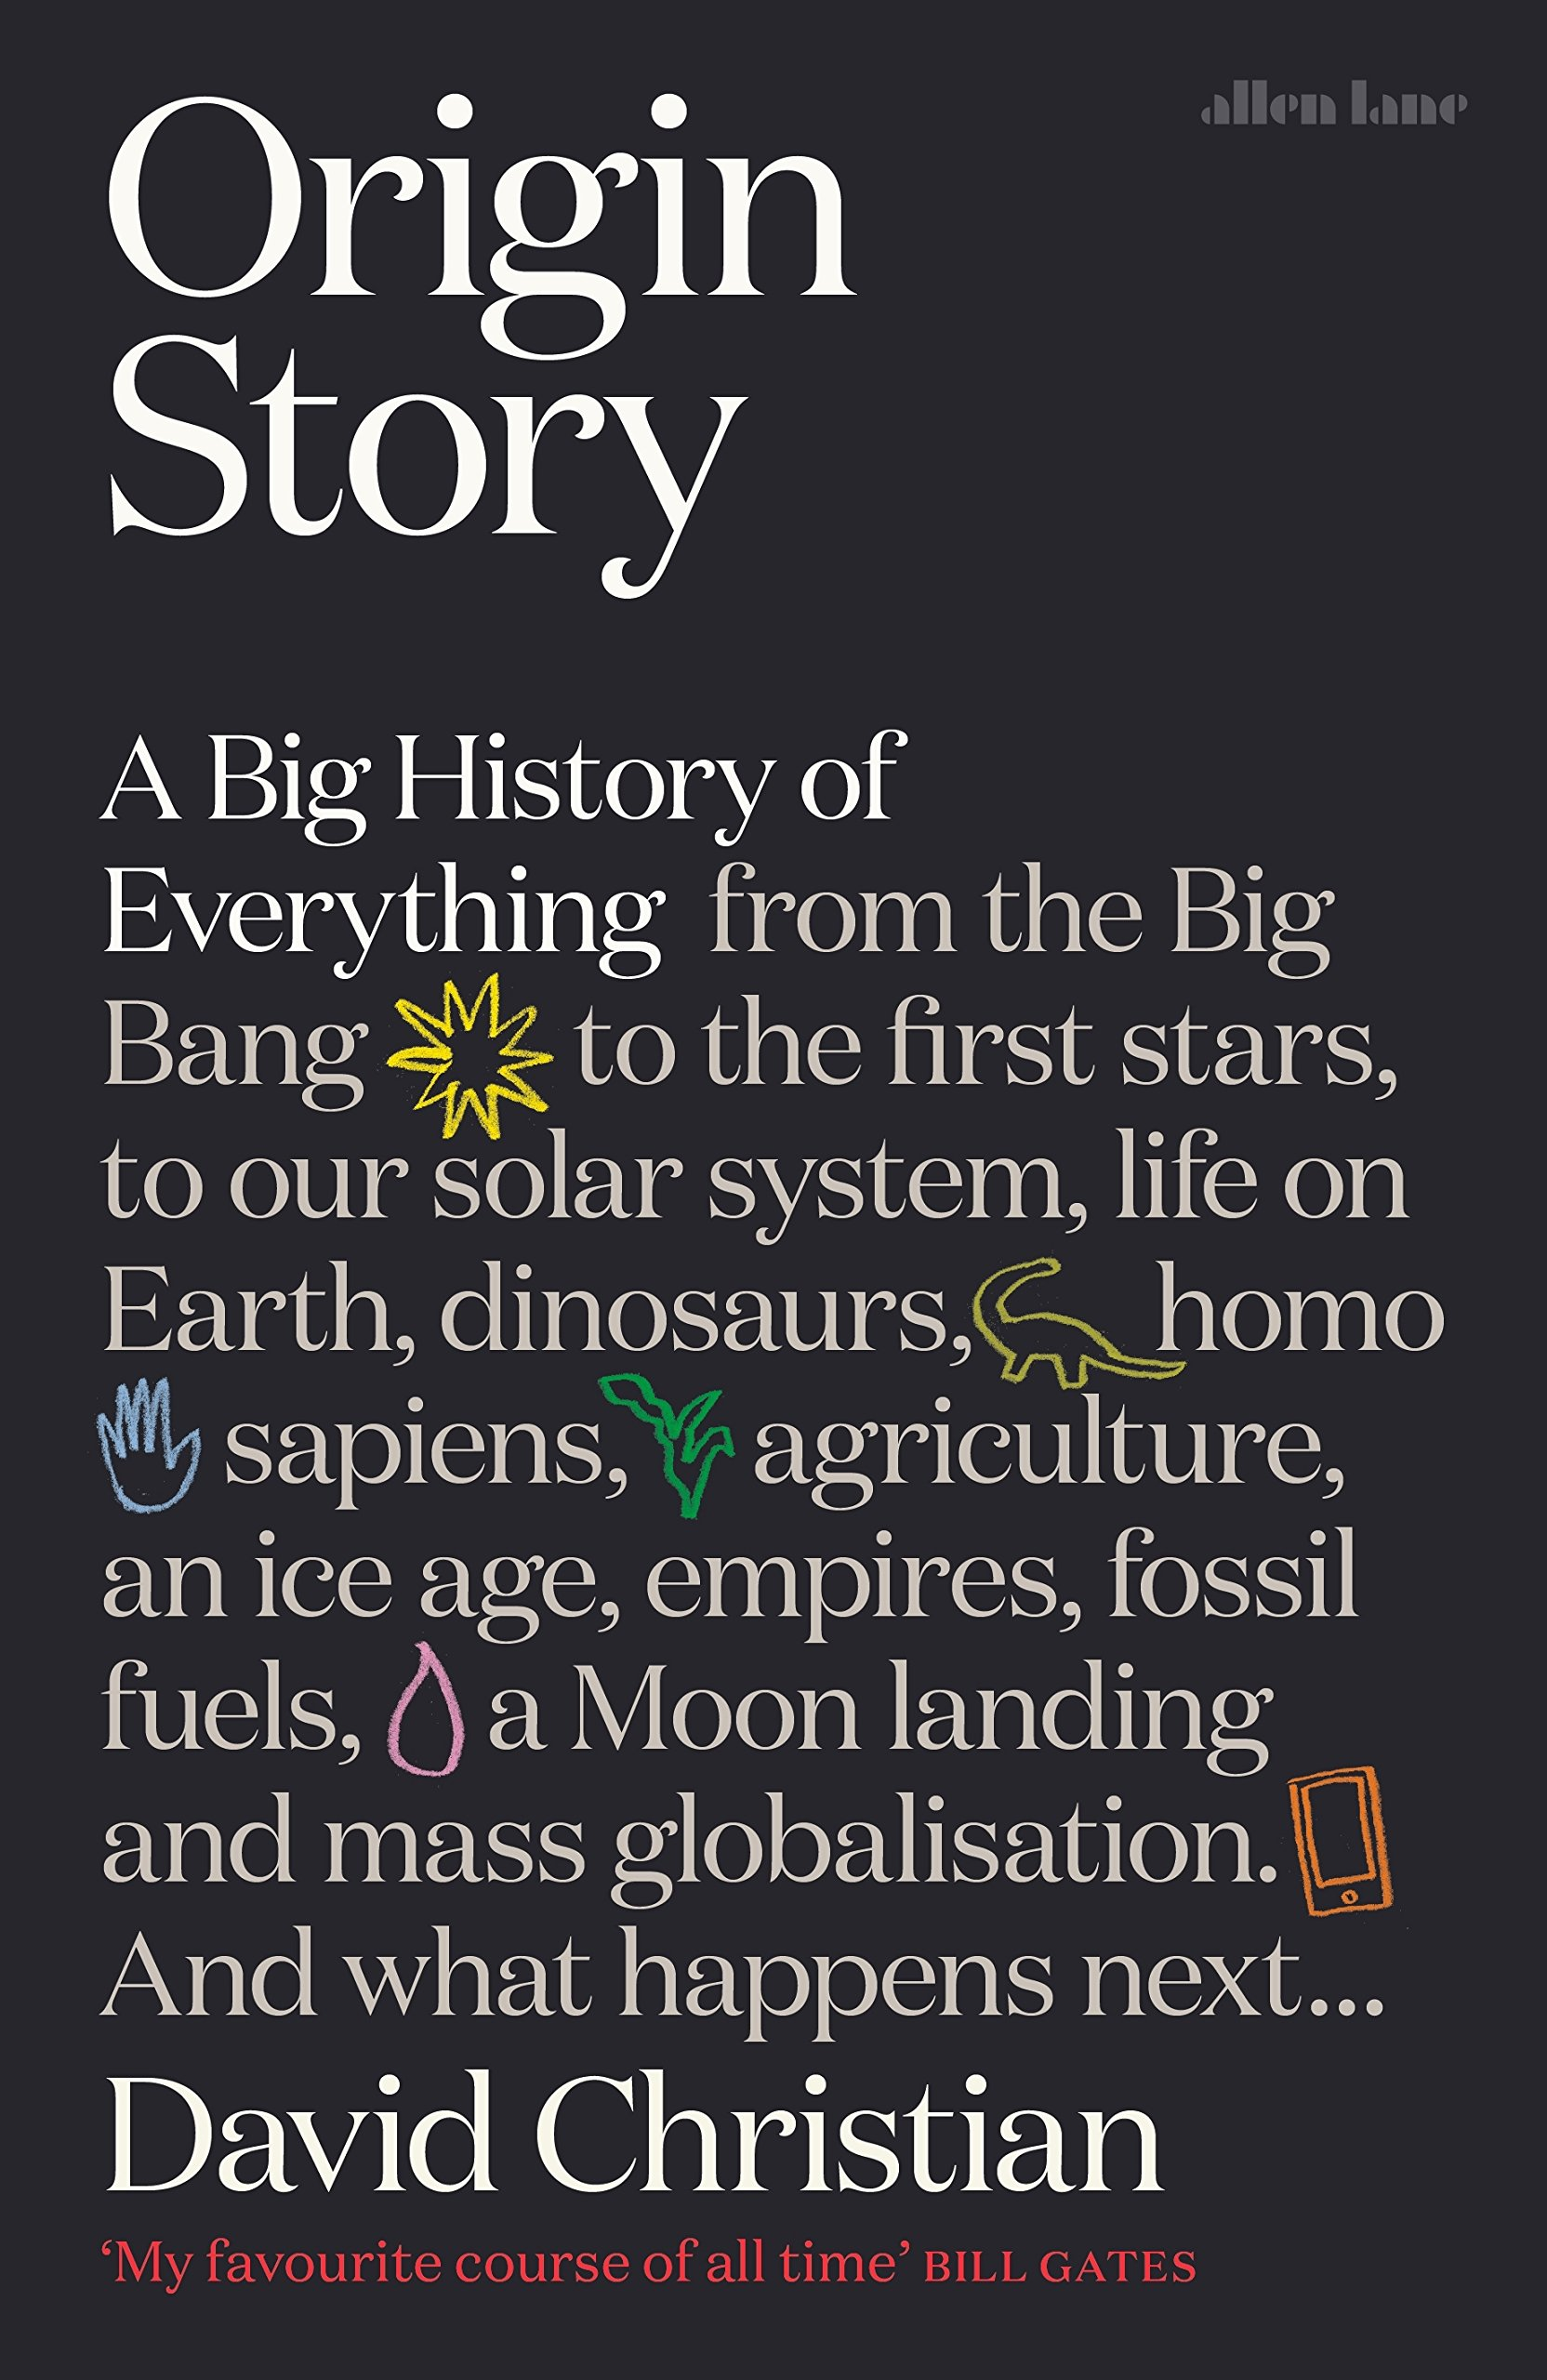 Origin Story: A Big History of Everything: Amazon.es: David Christian: Libros en idiomas extranjeros